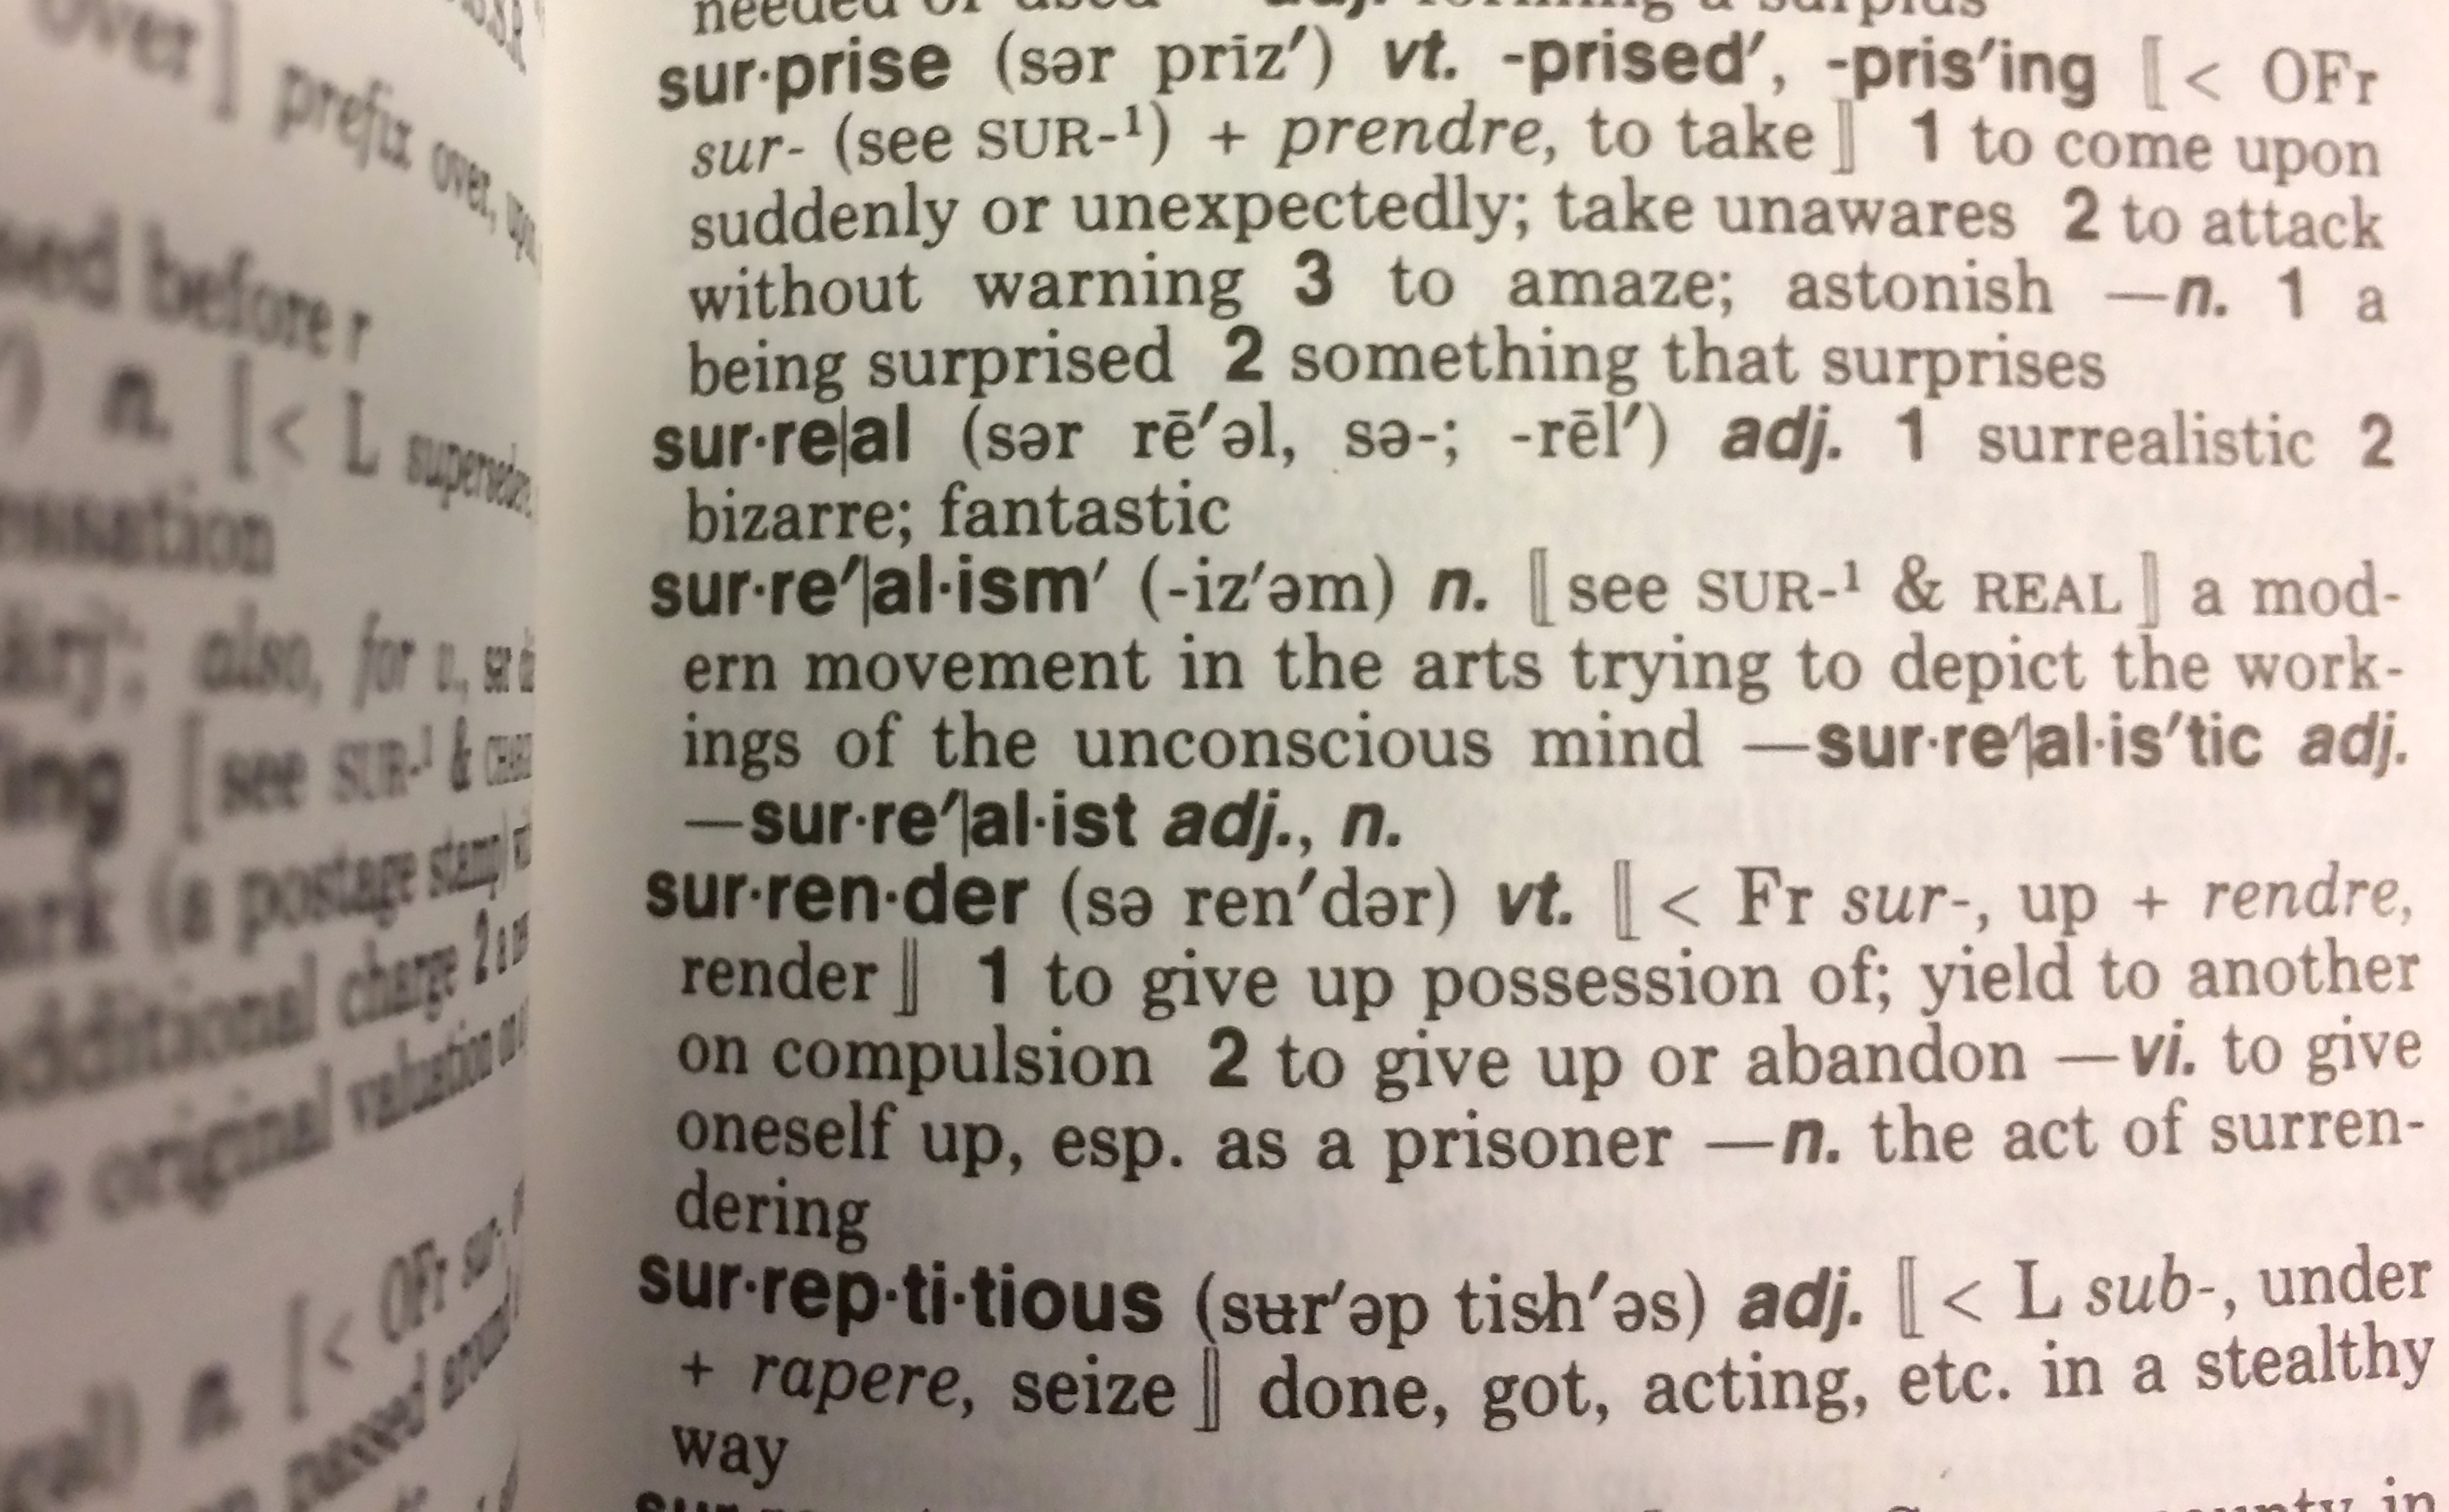 This December 16, 2016 photo illustration taken in Washington, DC. shows the definition for the word  Surreal  in a copy of the Webster's Desktop Dictionary.                       Donald Trump's upset win in the US presidential election astonished people so much that they rushed to the dictionary to look up the word everyone was using to describe the event: surreal. Indeed, Merriam-Webster's dictionary on Monday named surreal its Word of the Year 2016, the honor given to the word or term with the sharpest spike in look-ups over the previous year.                        / AFP / Karen BLEIER        (Photo credit should read KAREN BLEIER/AFP/Getty Images)